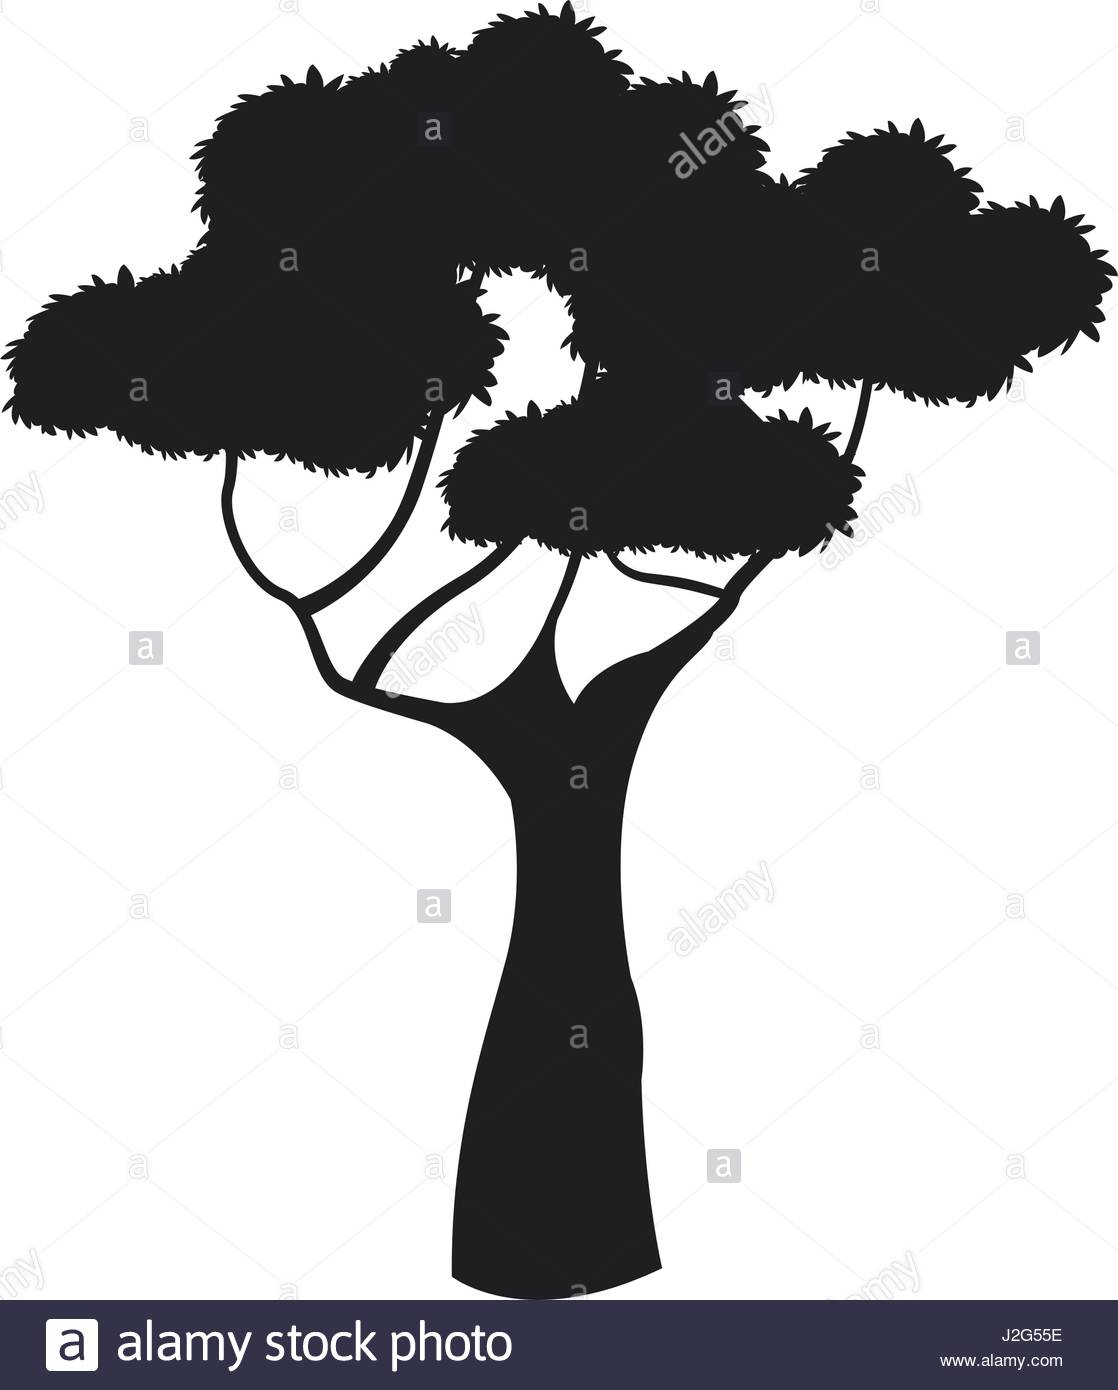 1118x1390 African Tree Silhouette Stock Photos Amp African Tree Silhouette